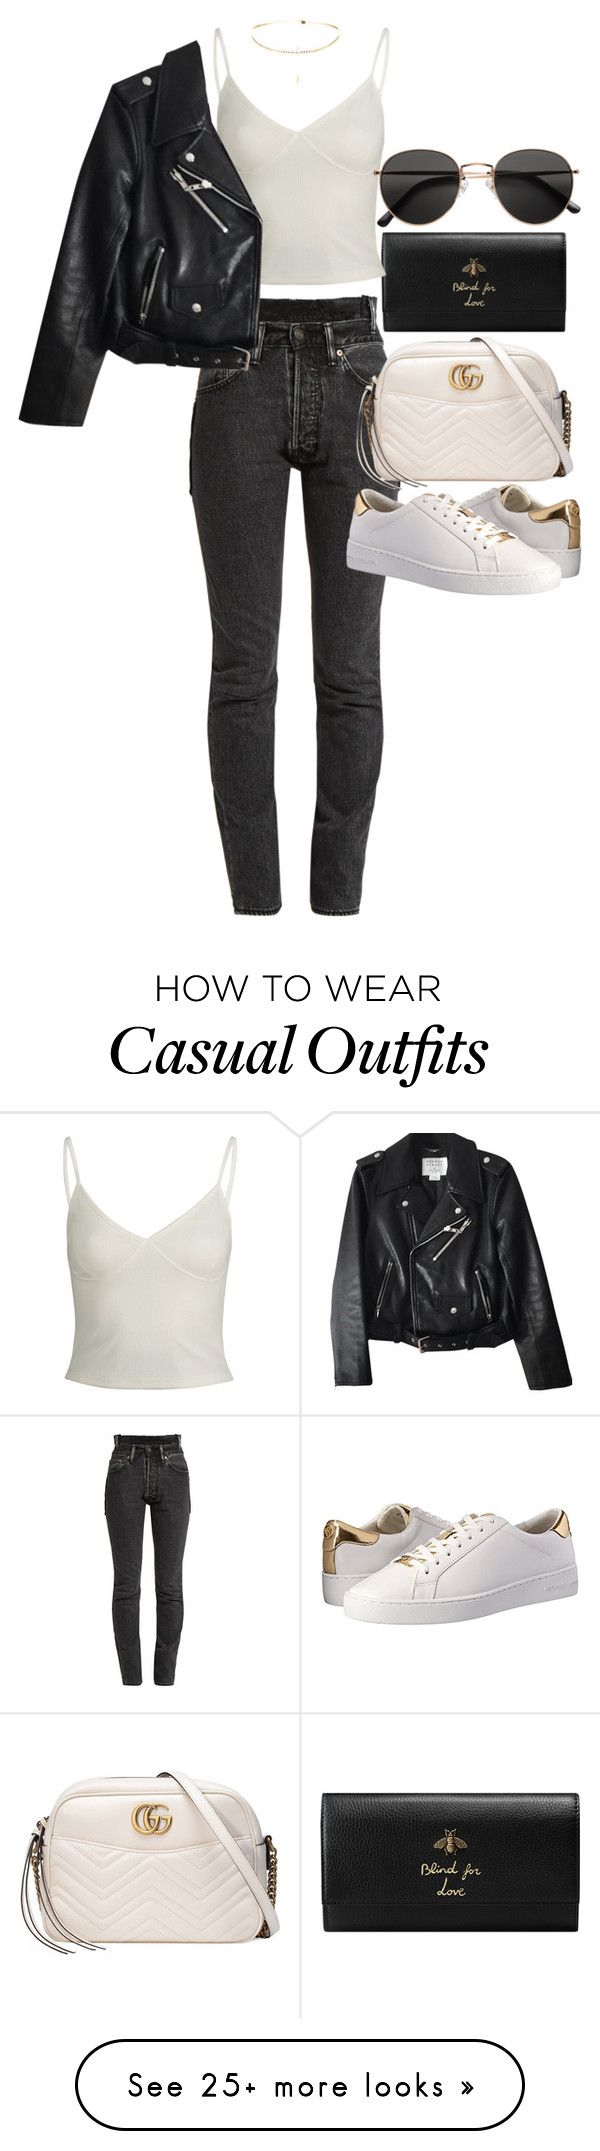 """""""Untitled #21638"""" by florencia95 on Polyvore featuring Gucci, Vetements, Kate Spade, MICHAEL Michael Kors and H&M"""